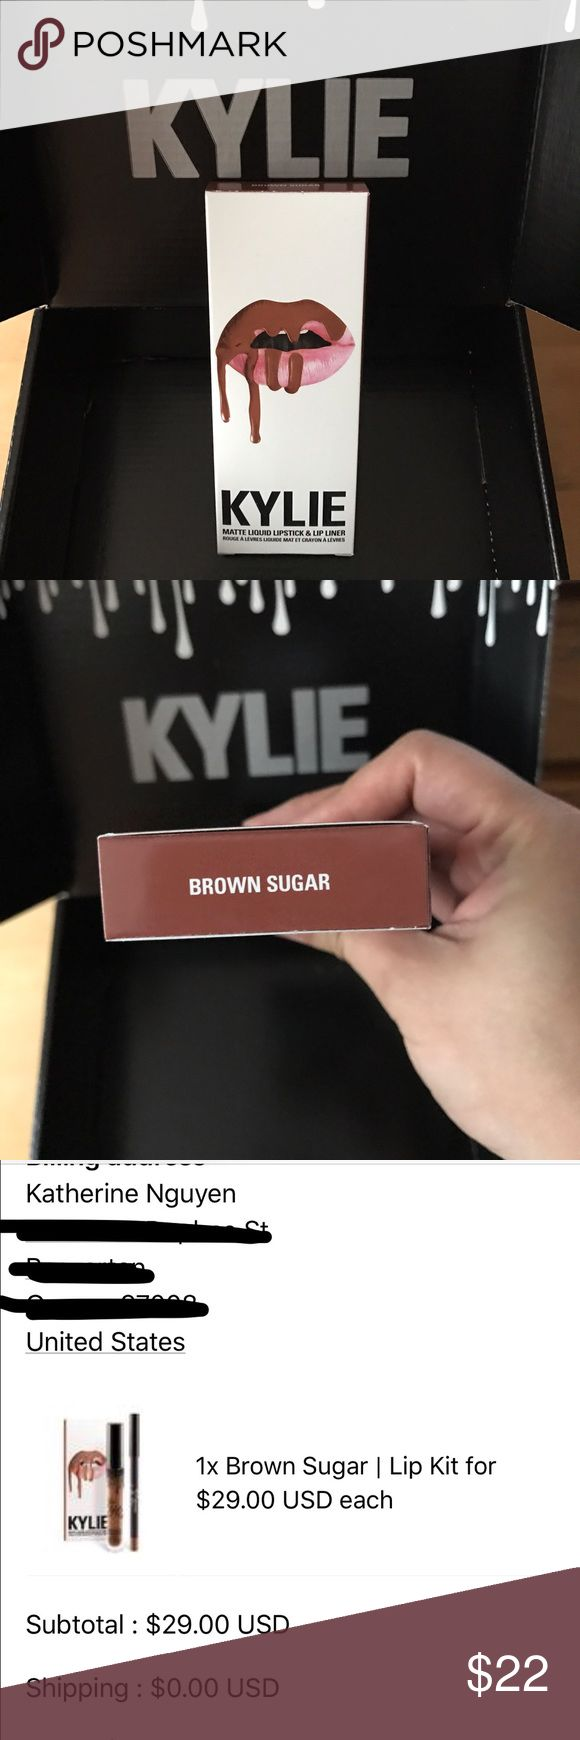 """Kylie Lip Kit """"Brown Sugar"""" Brand new, never been used. Authentic. I have a huge makeup collection that I haven't used, just like to buy whatever is trendy. However, I'm trying to sell most of my collection for school tuition so I'm just parting away with the ones I don't think I'll need. I'm not looking for a profit, just hoping to make some money back. Comes with lip liner and lip matte, but will be sent in a regular envelope. Kylie Cosmetics Makeup Lipstick"""